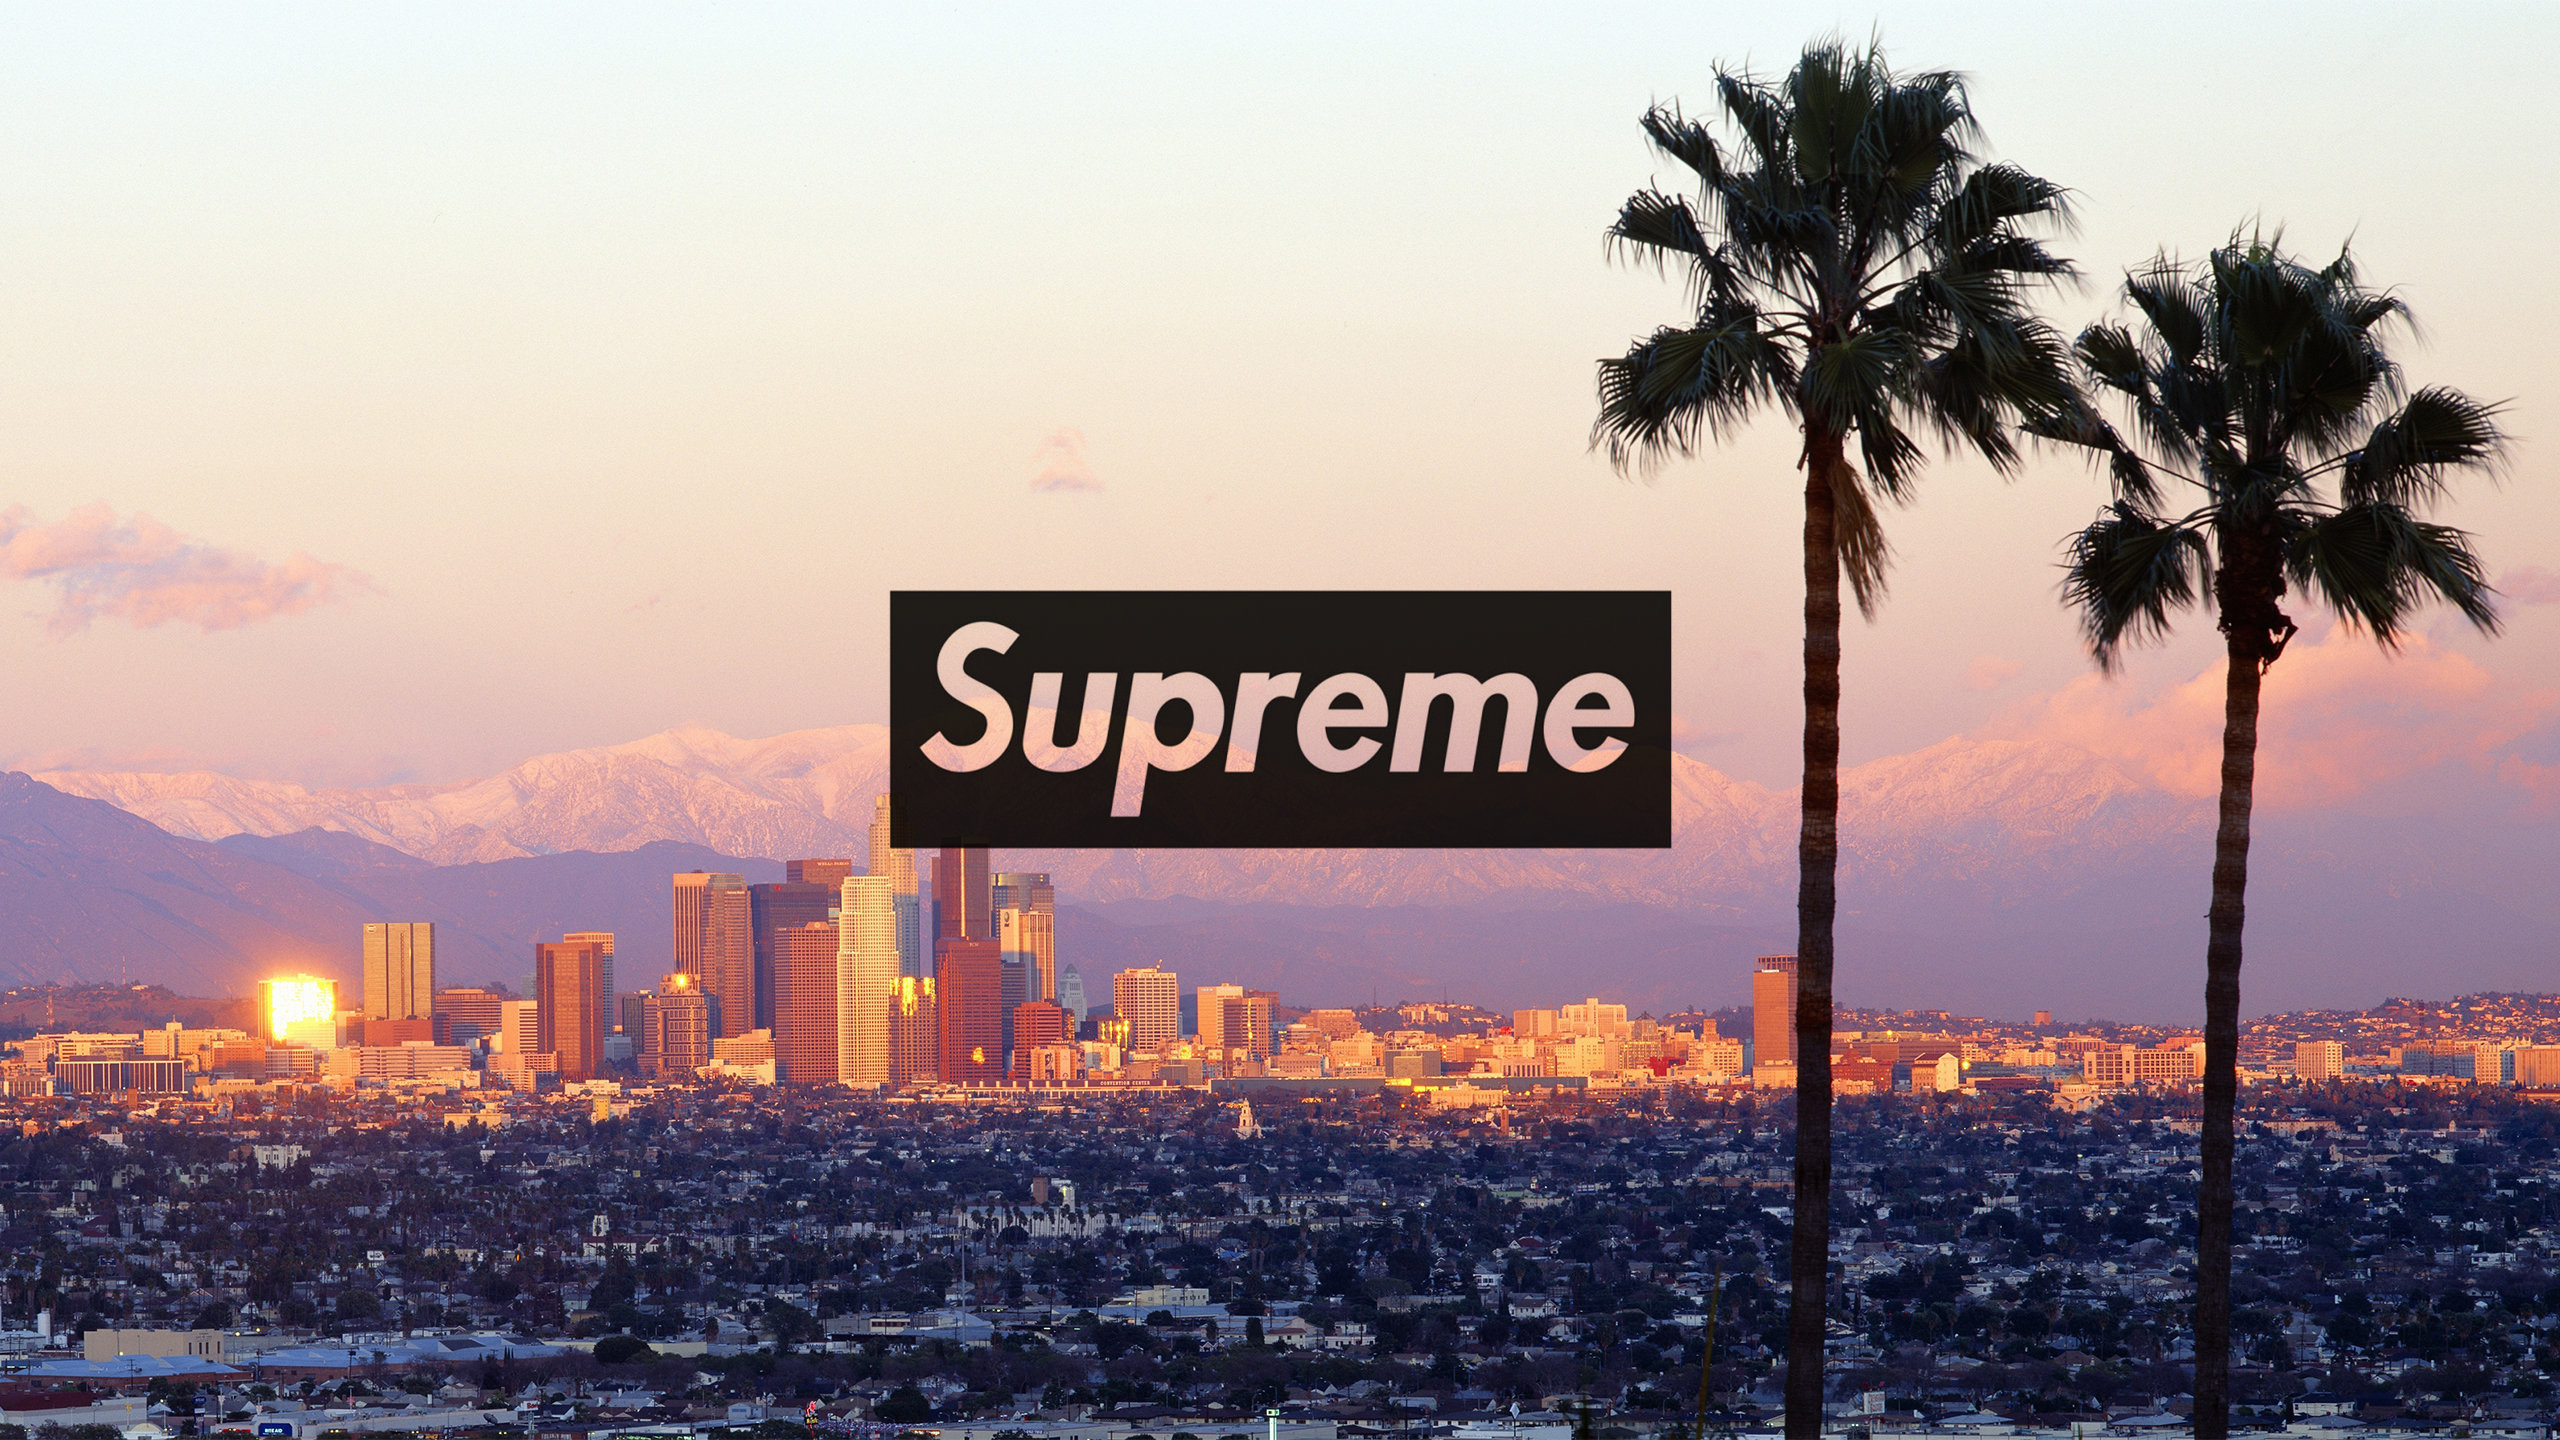 Download the Los Angeles Supreme wallpaper below for your mobile device  (Android phones, iPhone etc.)